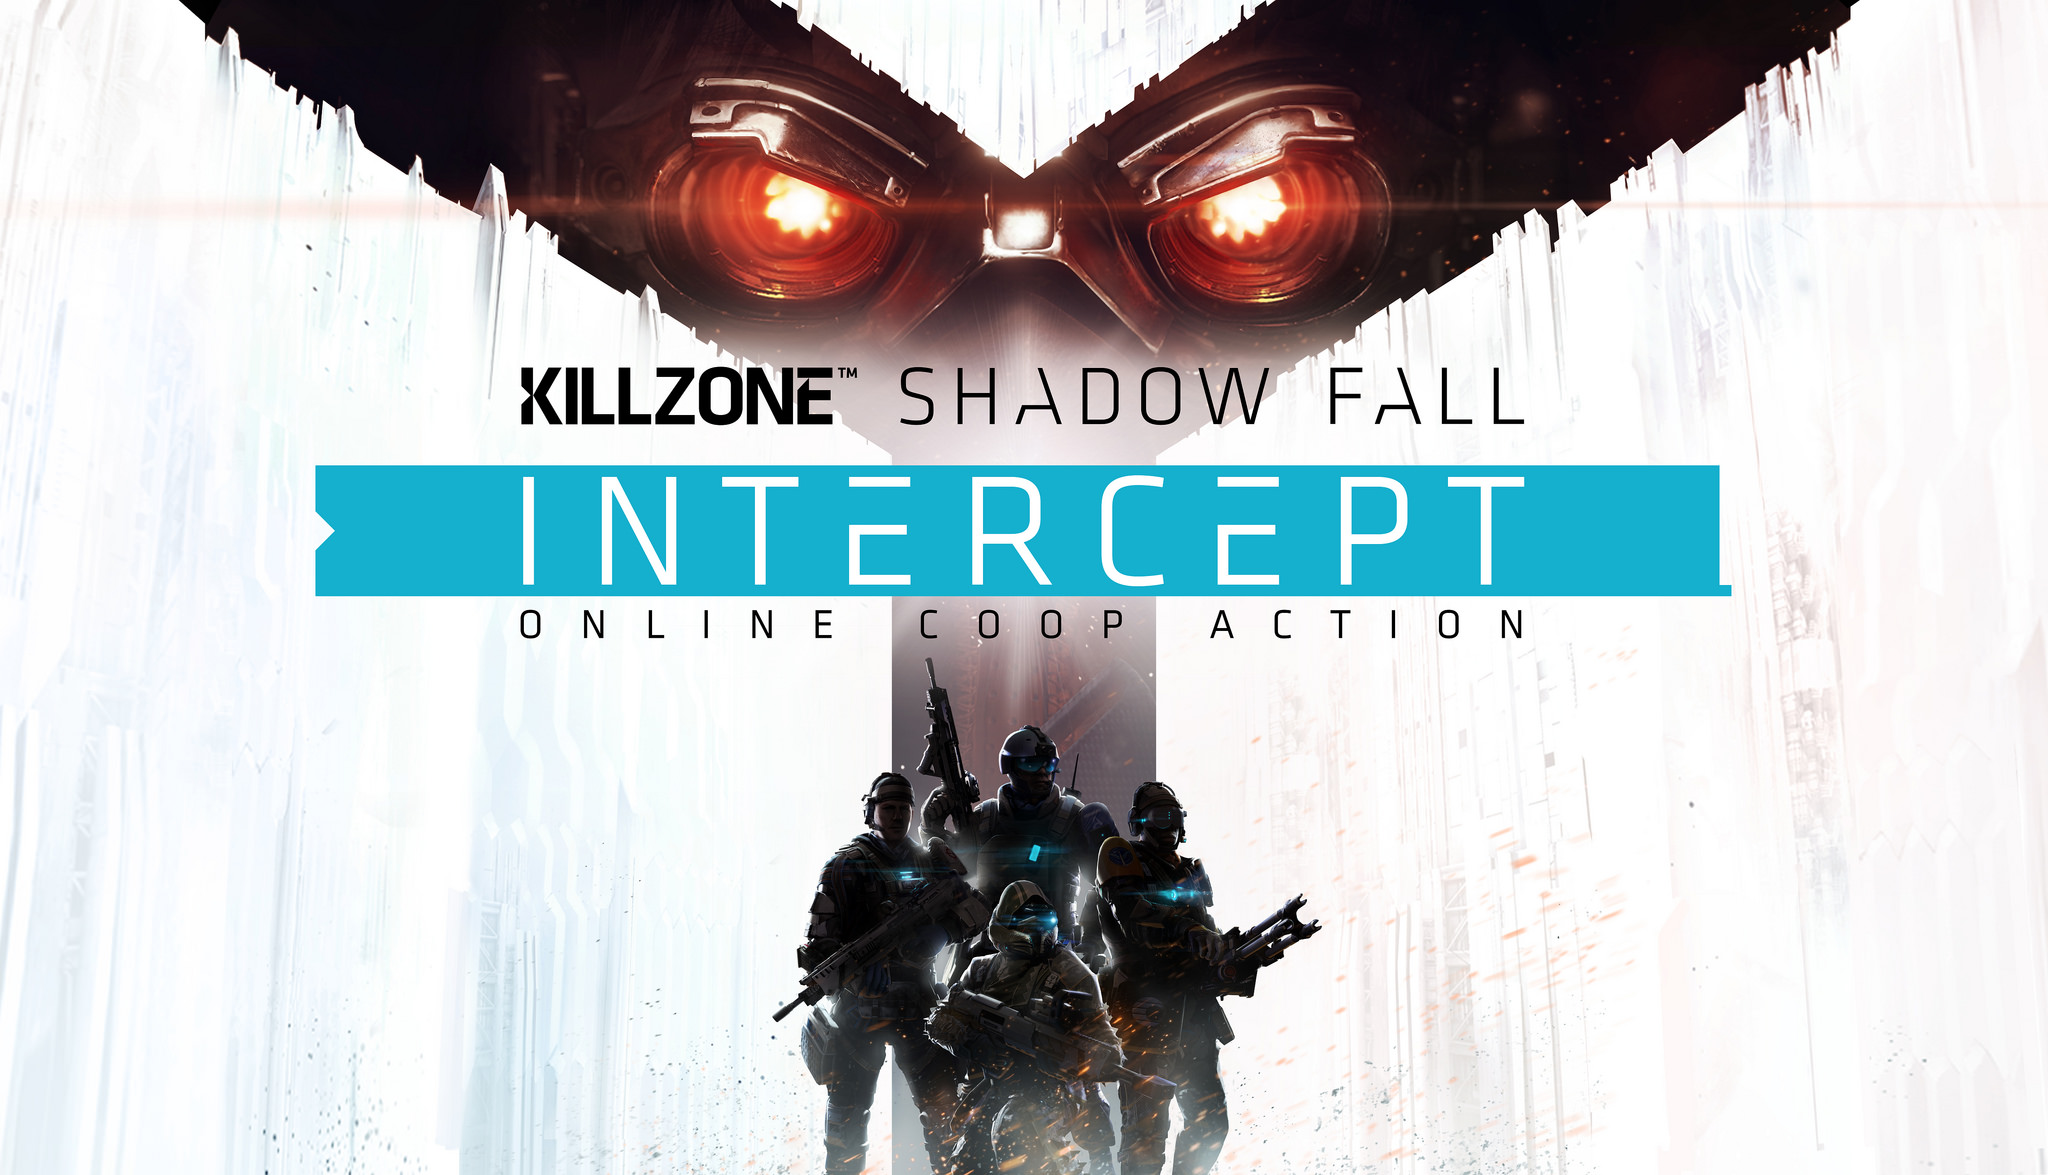 killzone-shadowfall-intercept-tgp1.jpg